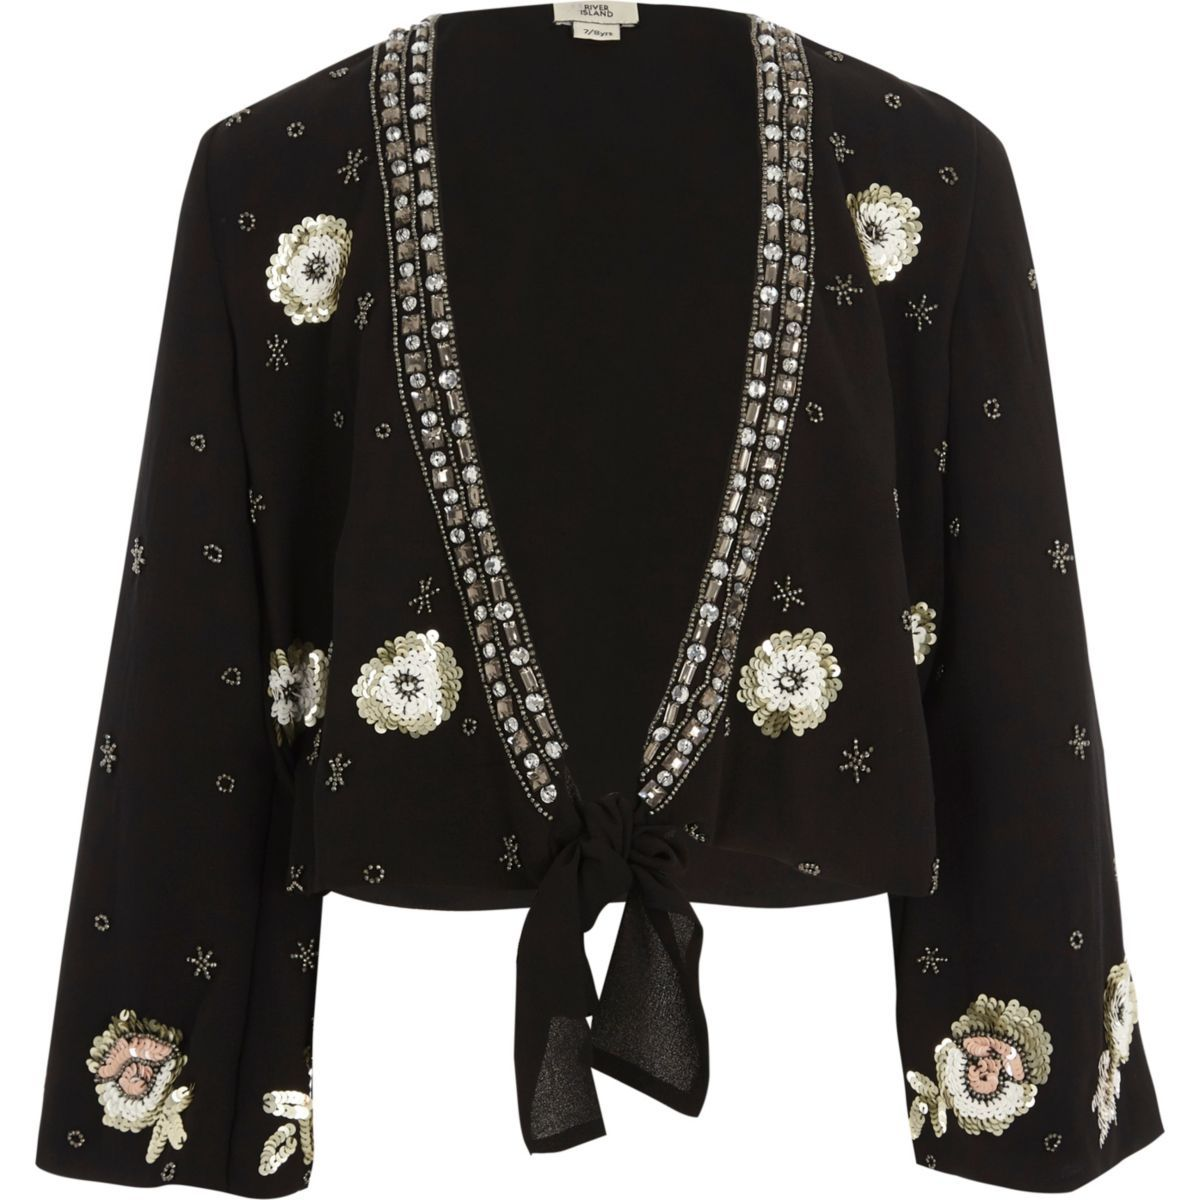 Girls black embellished tie front cover up woven fabric top top